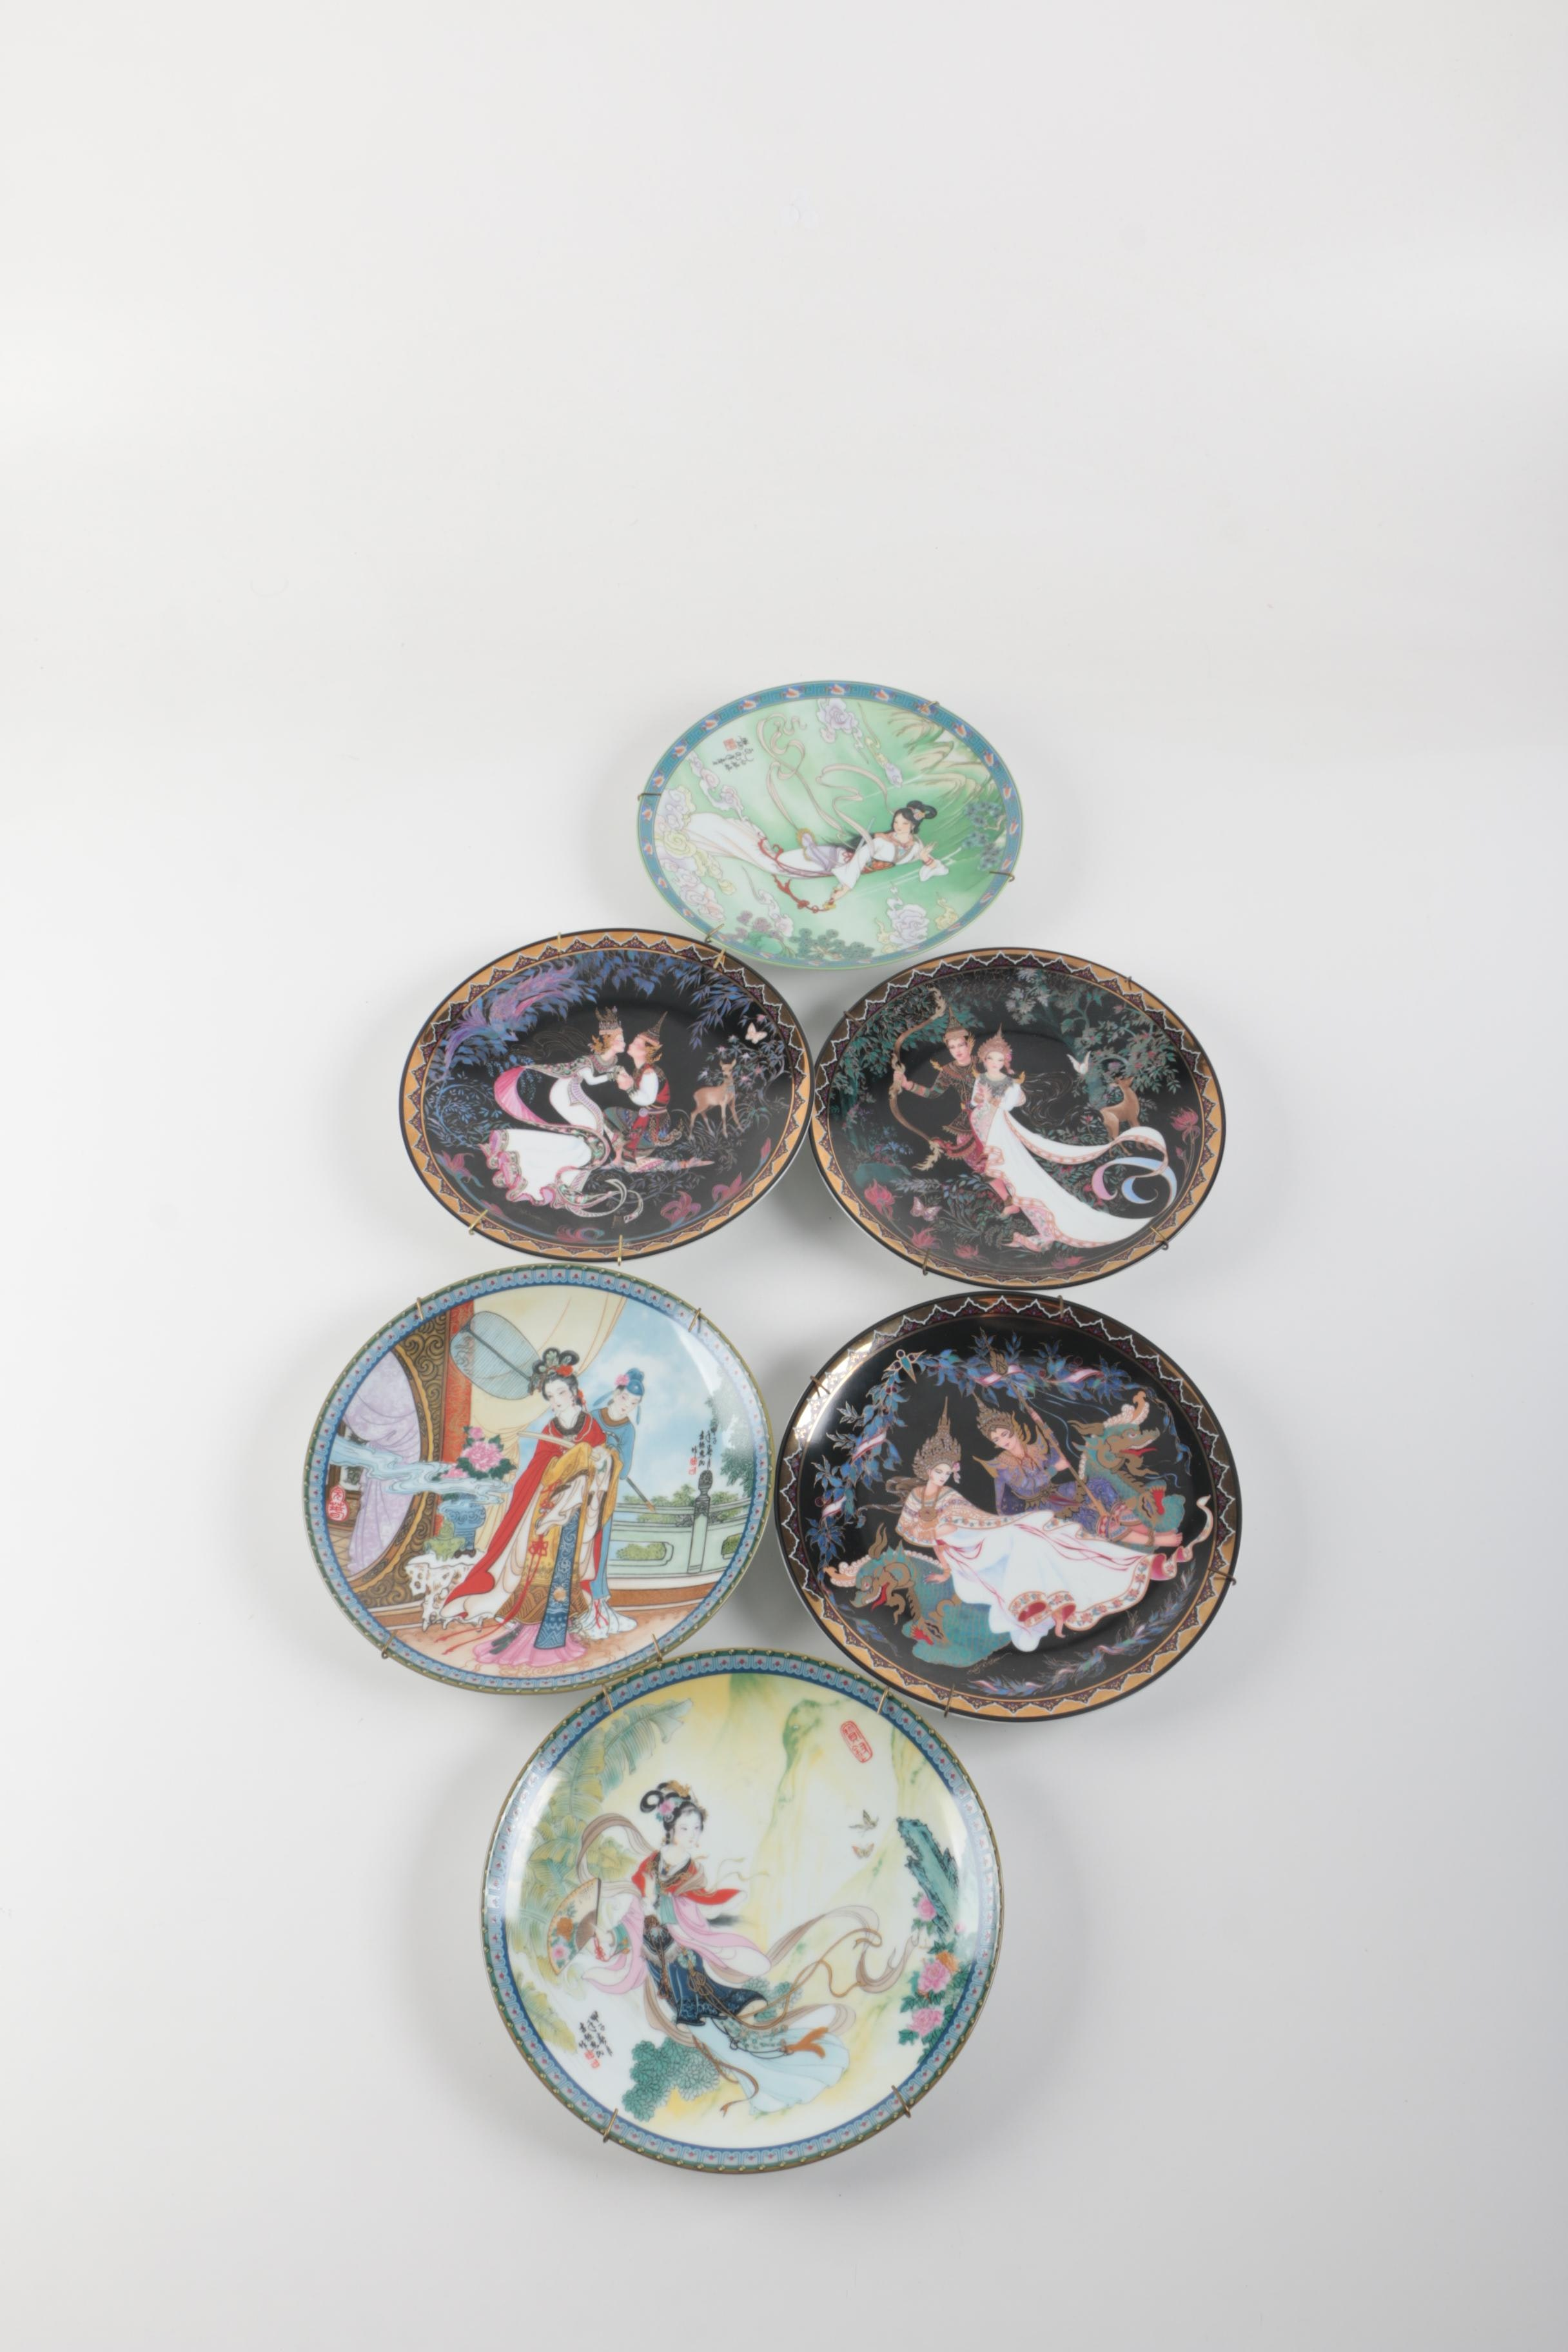 Thai and Chinese Decorative Porcelain Plates